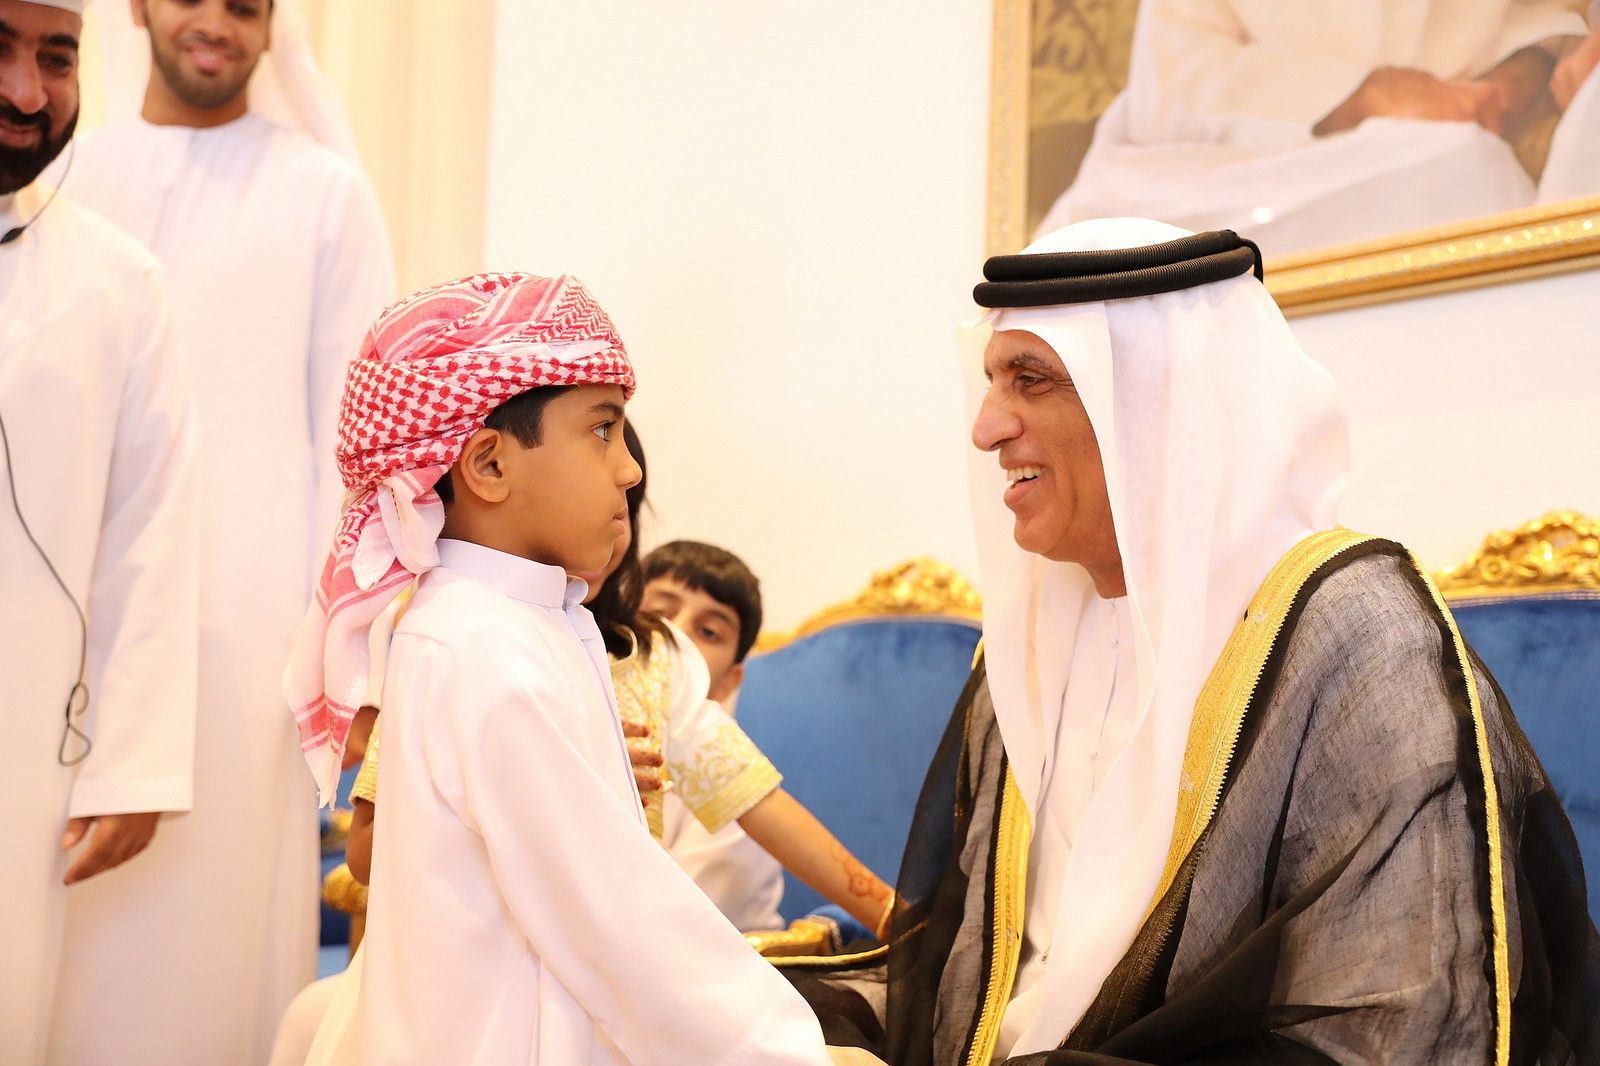 The Sheikh Saud bin Saqr Al Qasimi Foundation for Policy Research was established in 2009 to aid in the social, cultural, and economic development of Ras Al Khaimah, a northern emirate in the United Arab Emirates (UAE). Established through Emiri decree, the Foundation is considered a non-profit, quasi-governmental organization